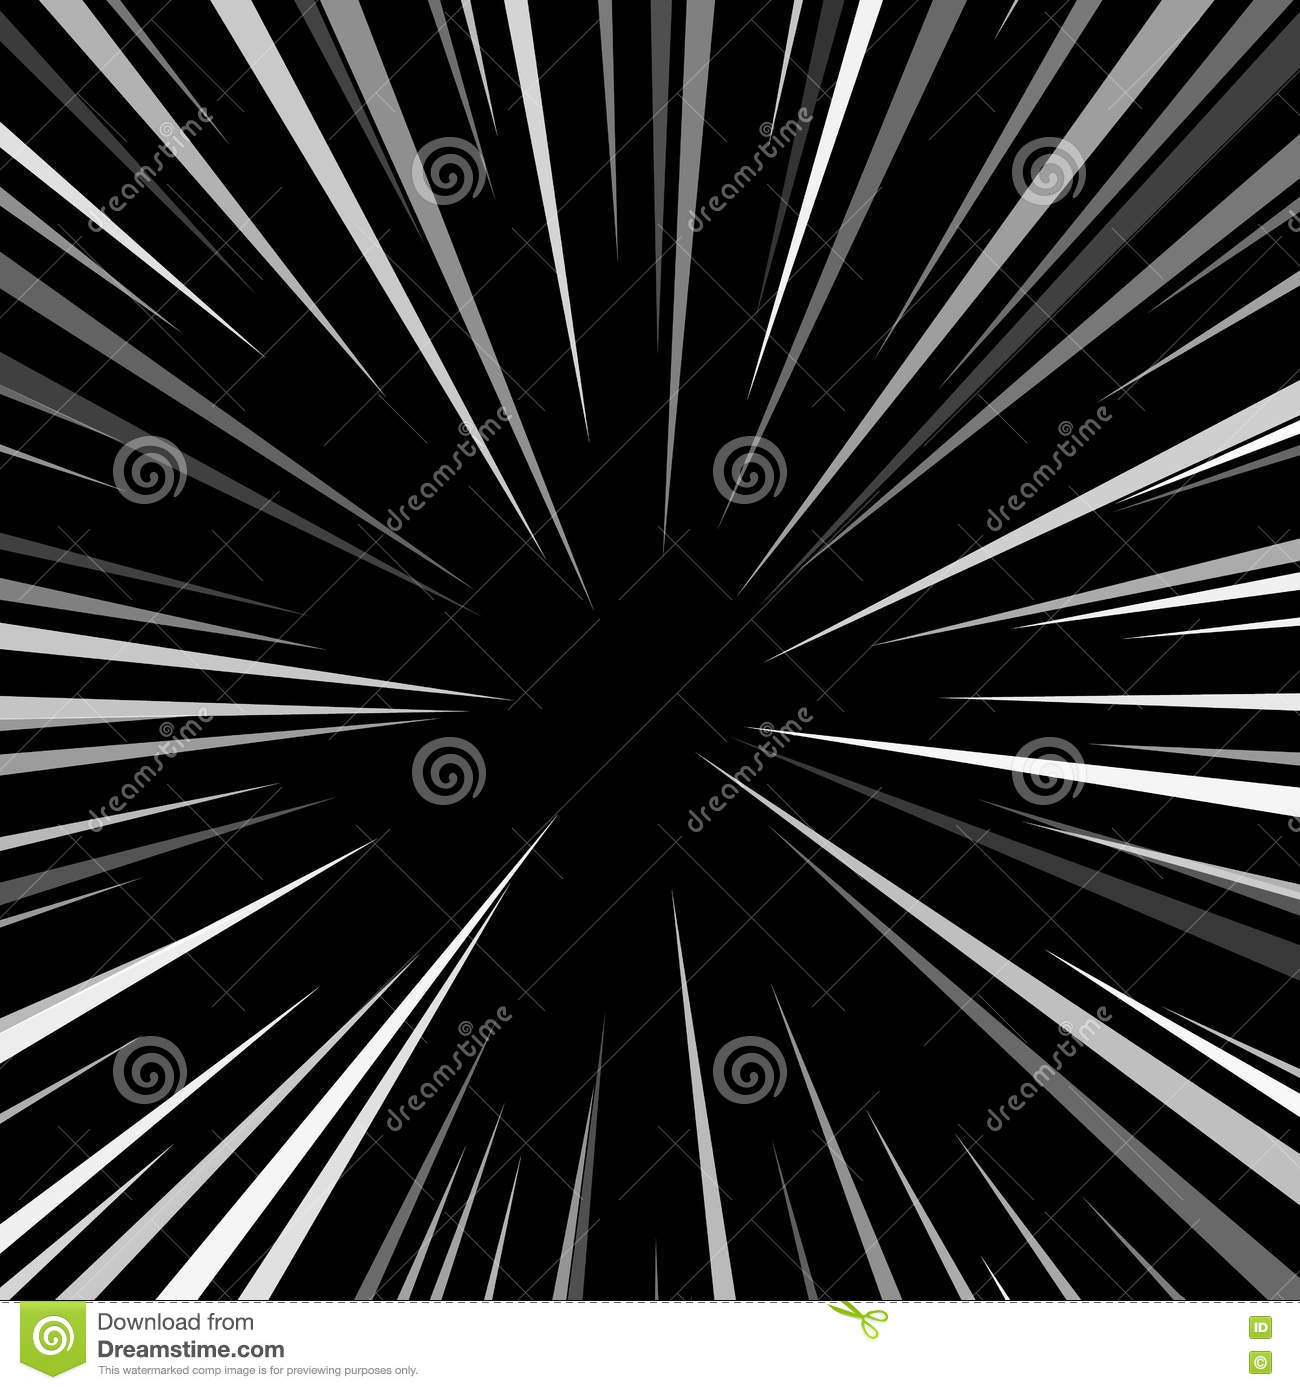 Comic Book Explosion Superhero Pop Art Style Black And White Radial Lines Background Manga Or